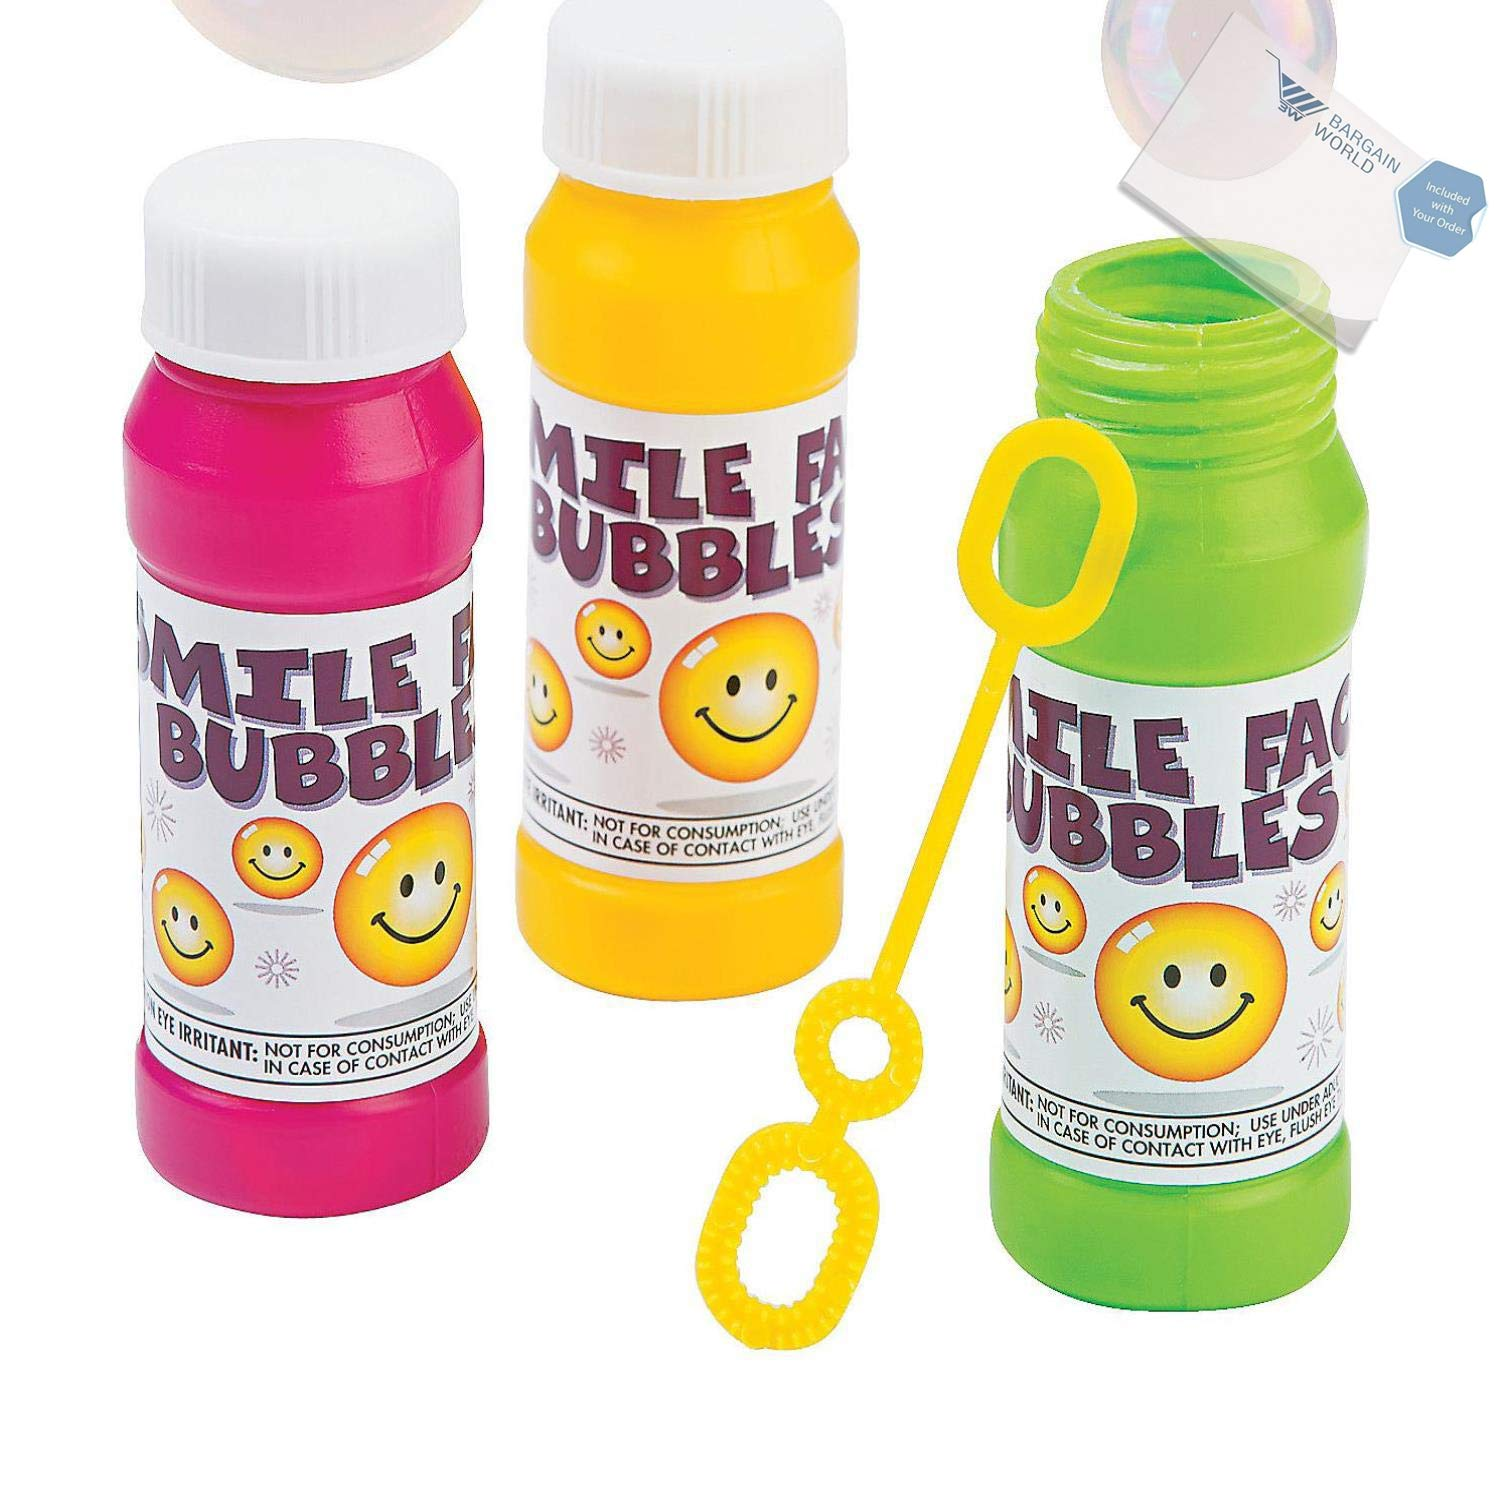 Bargain World Plastic Smile Face Bubble Bottles (With Sticky Notes) by Bargain World (Image #2)